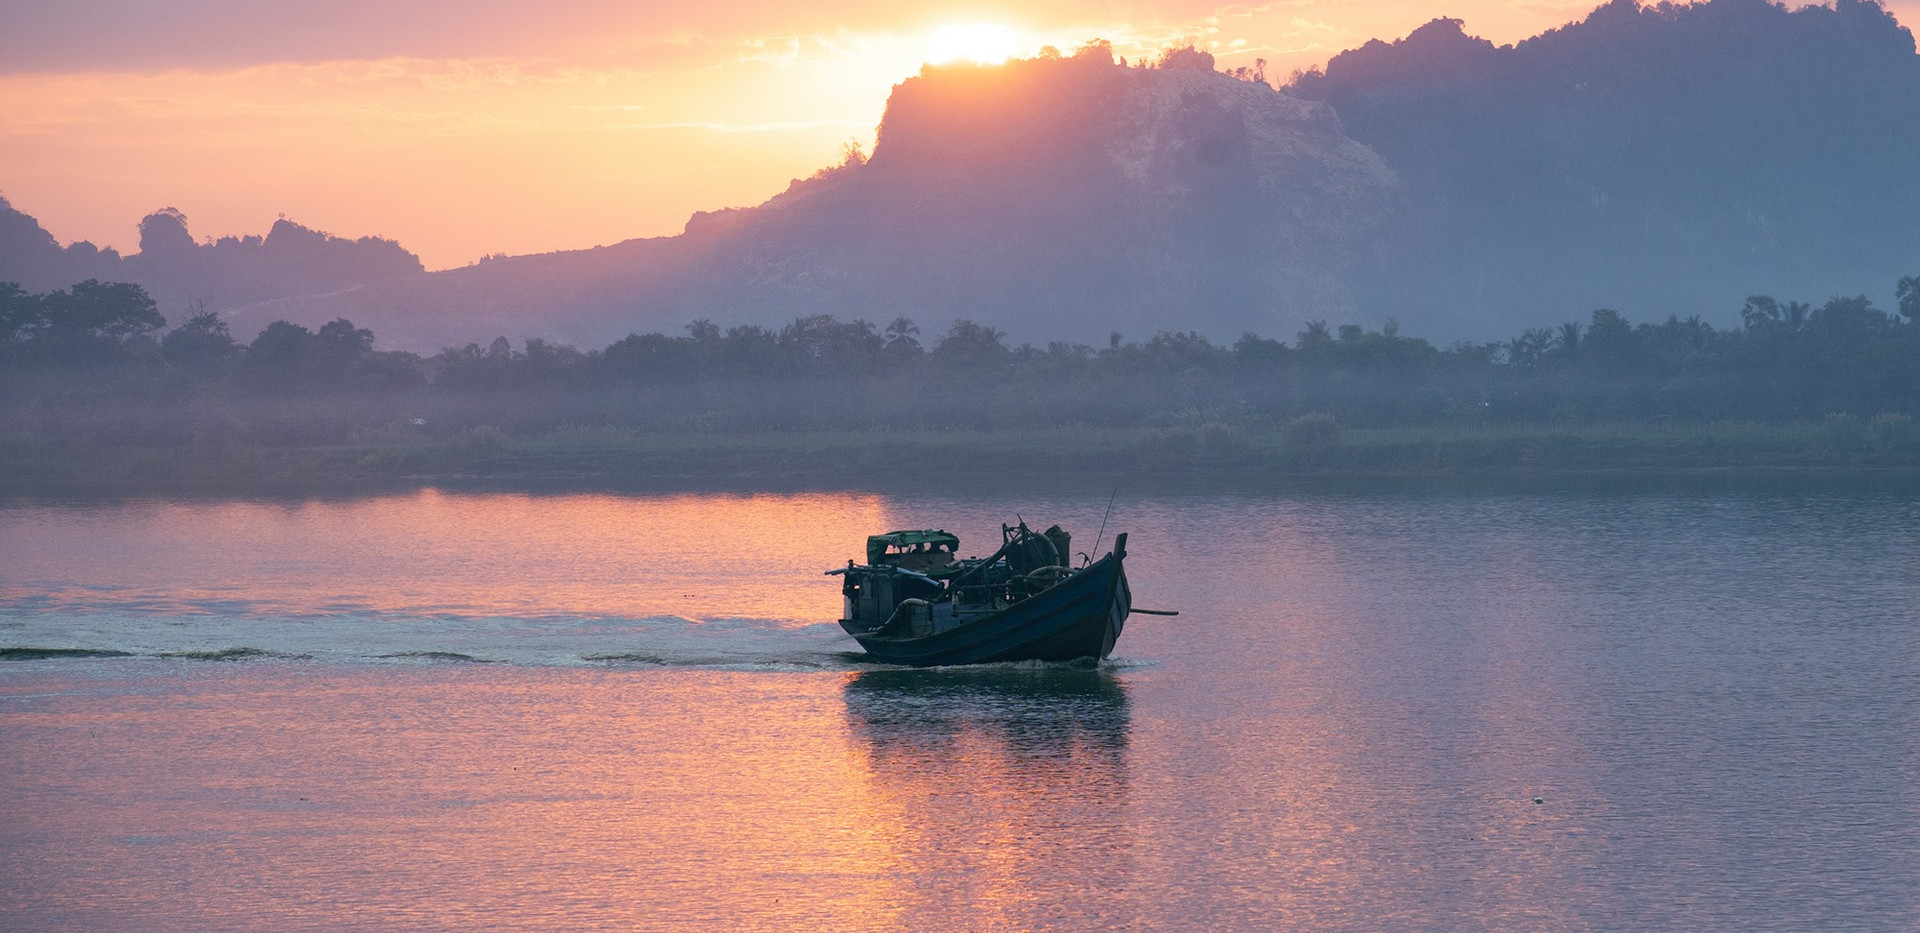 Sunset in Hpa An